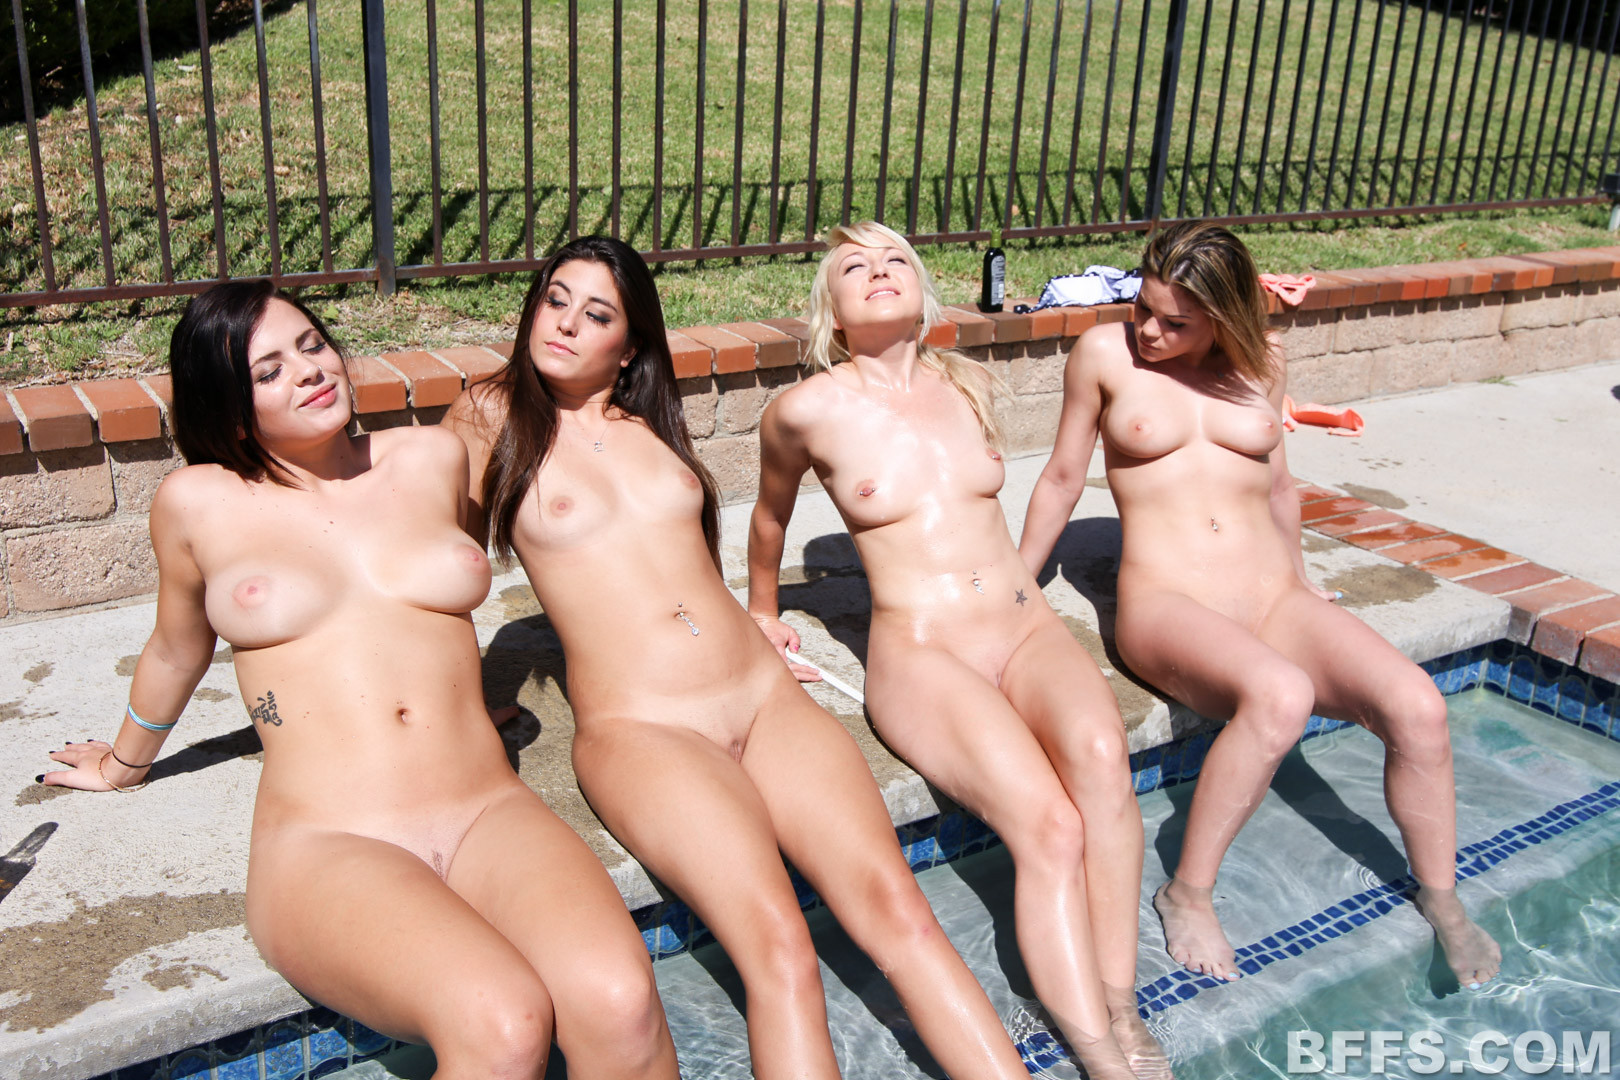 naked-girls-in-group-mix-vol3-38